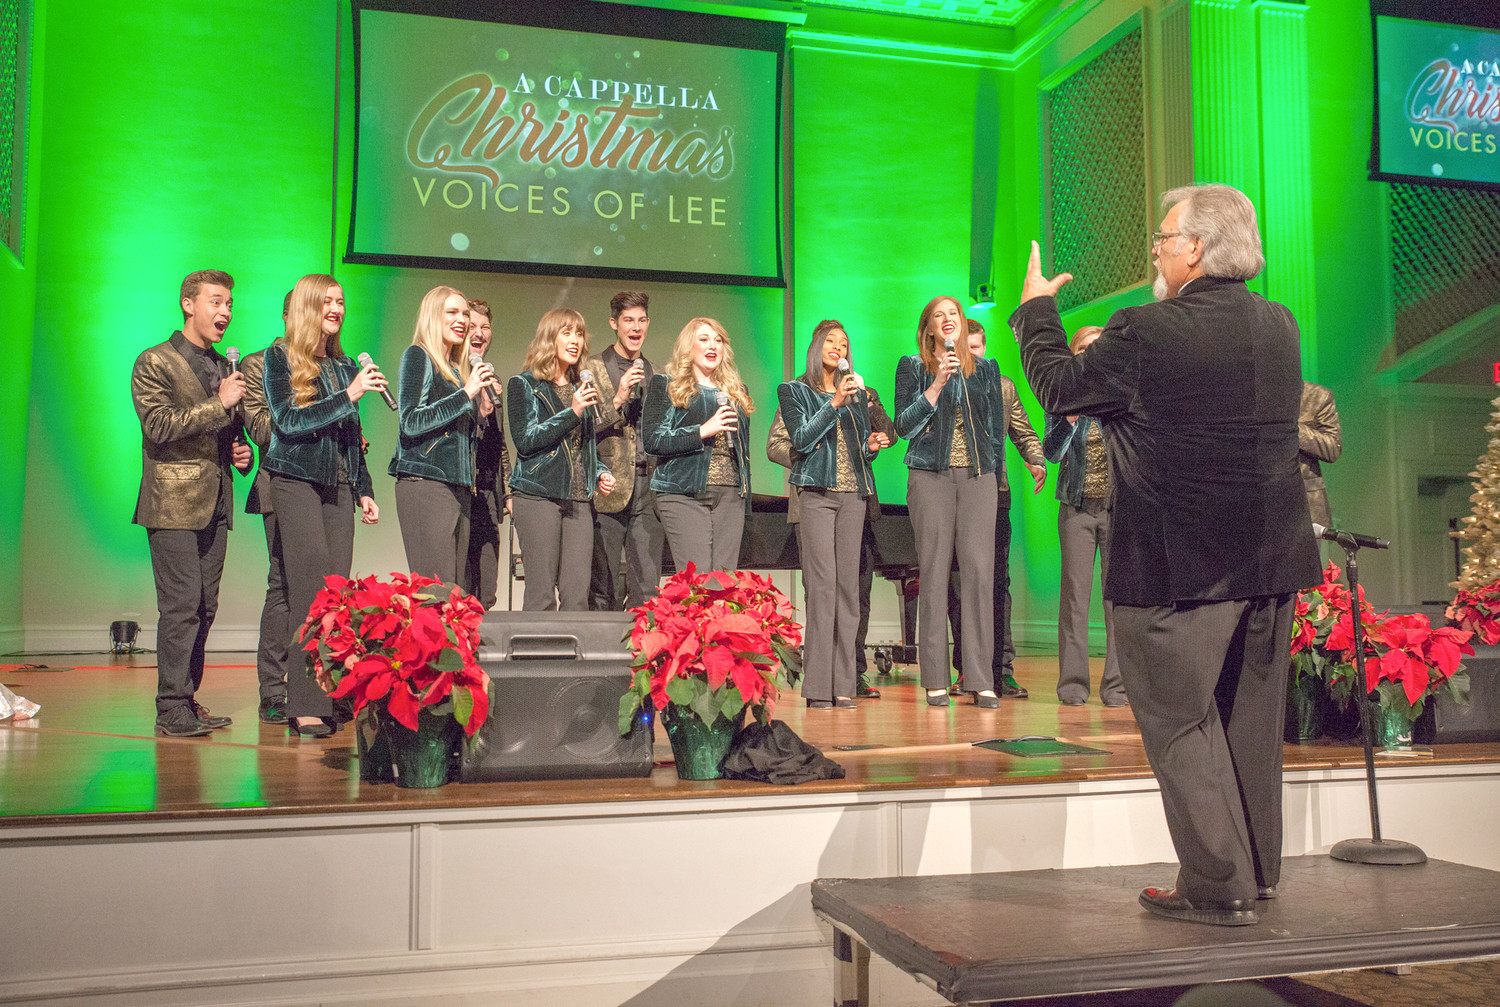 VOICES OF LEE light up Pangle Hall on Wednesday night during the a cappella Christmas concert, where the singers performed songs from their brand new album of the same name.